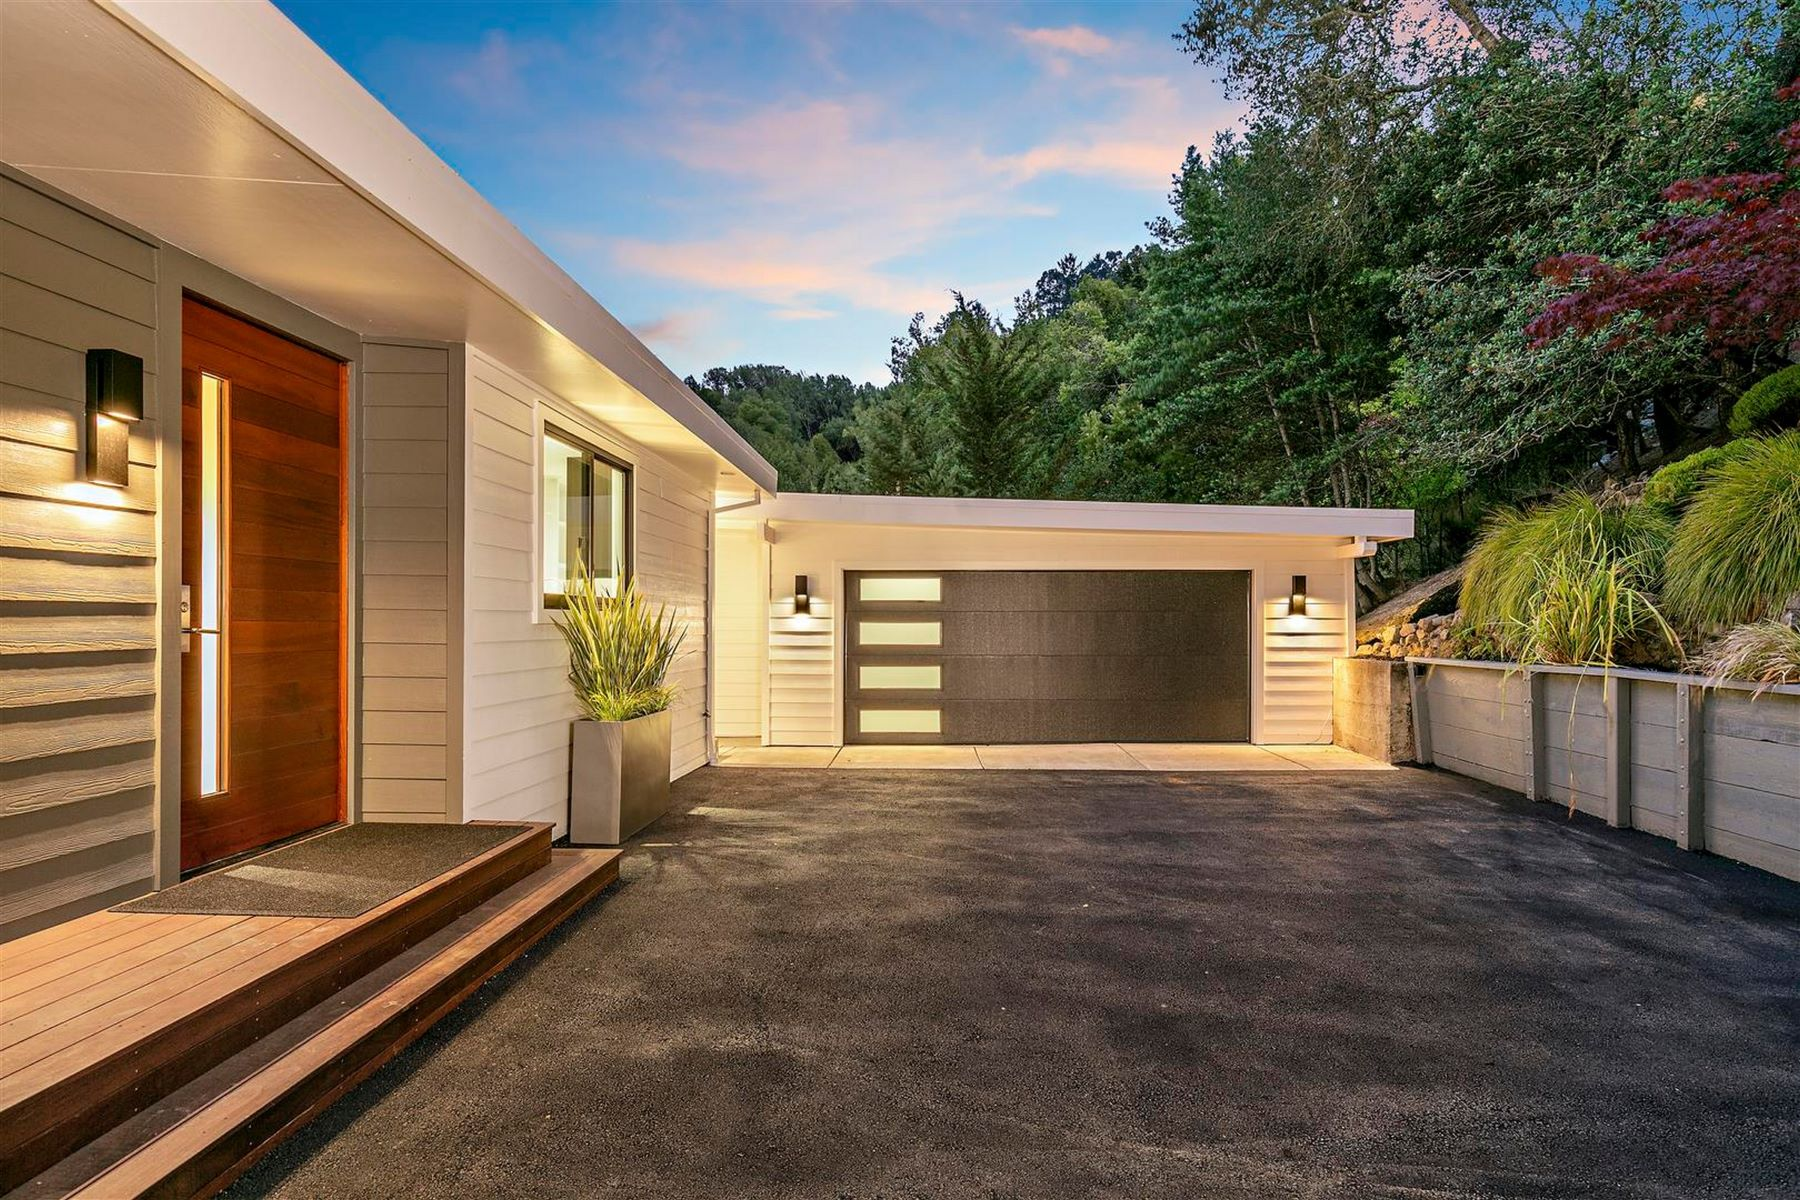 Single Family Homes for Sale at Stunning Mill Valley Modern 471 Live Oak Drive, Mill Valley, California 94941 United States